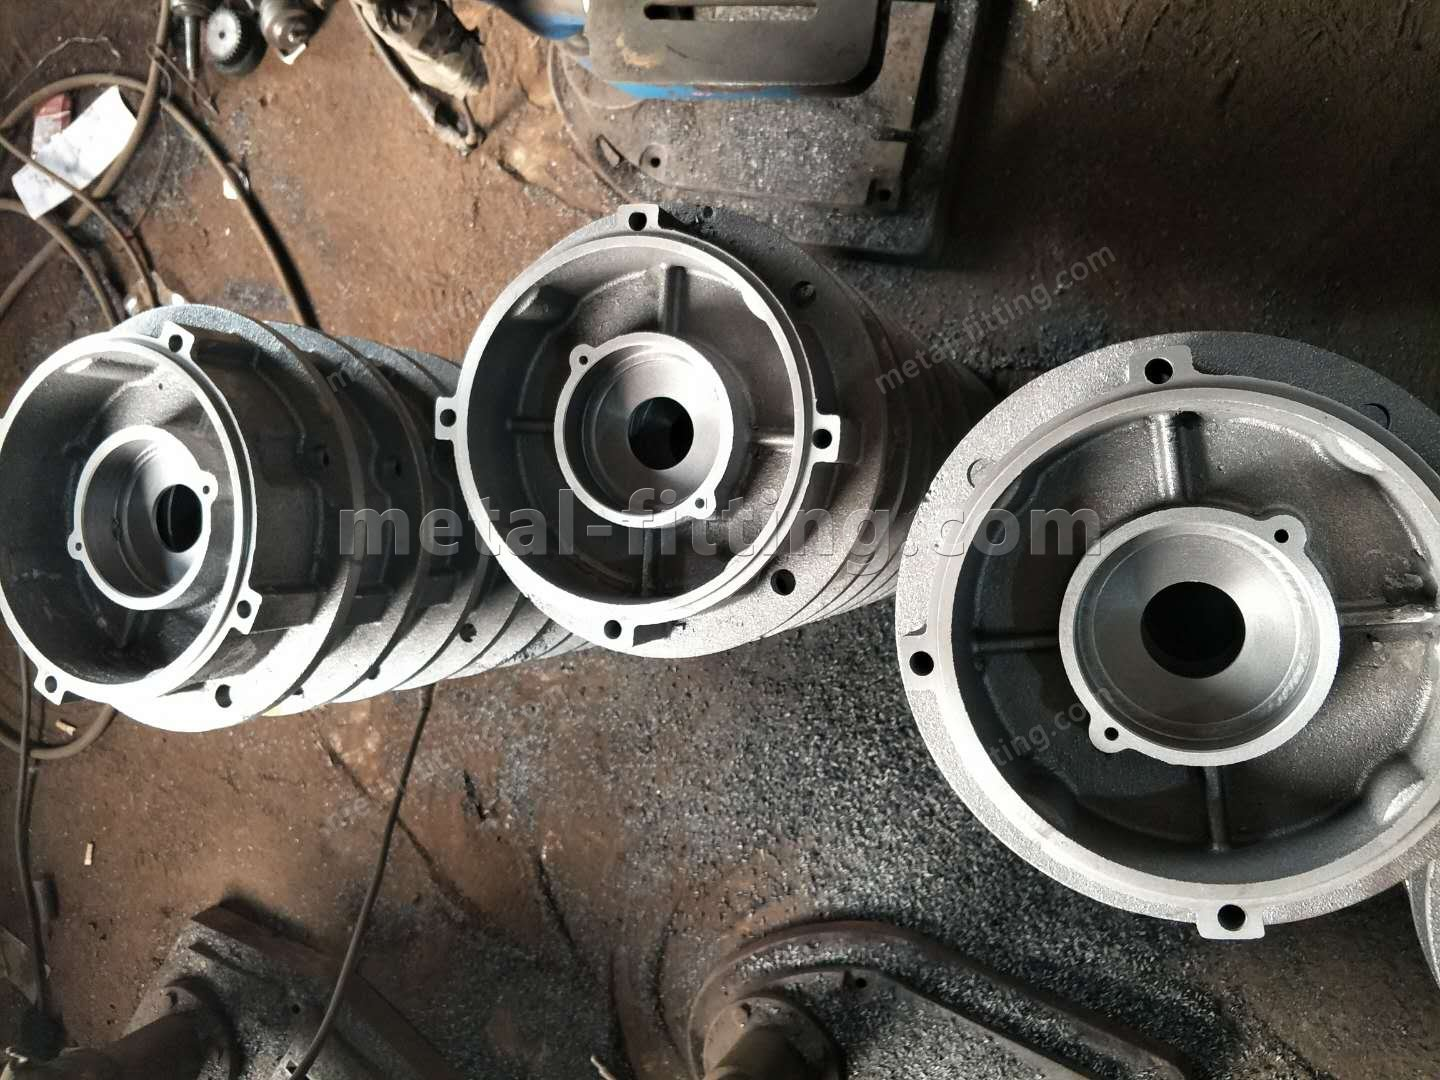 Casted iron Ring Gear and Pulley for concret Mixer-207926580451328887